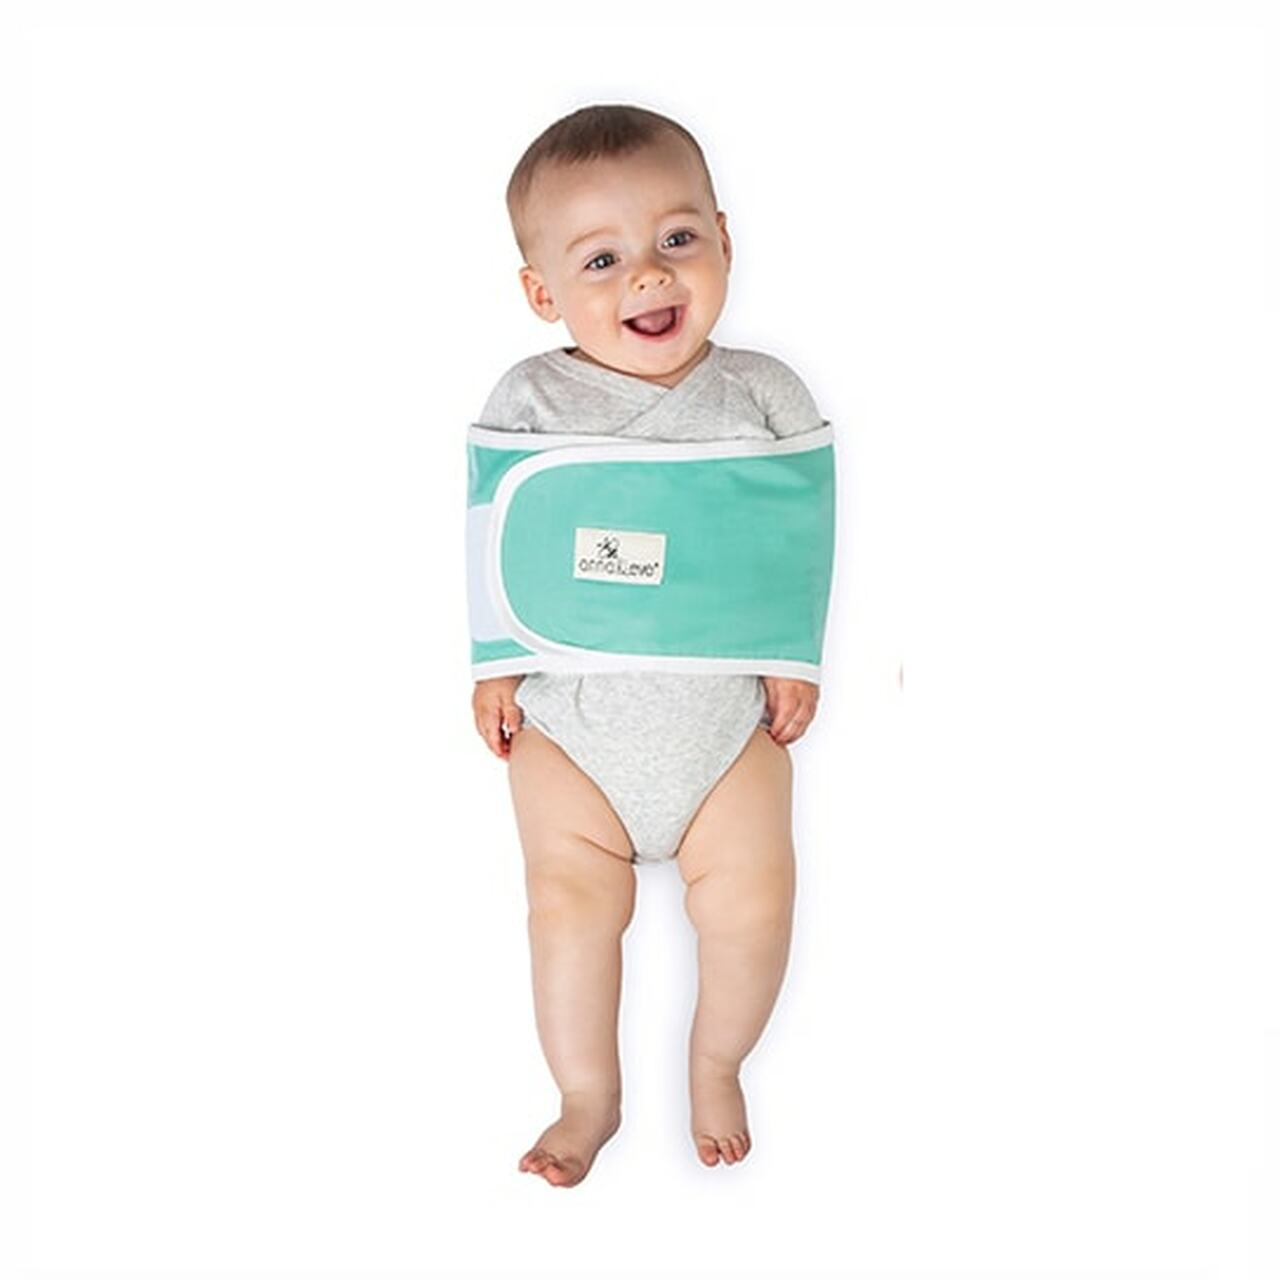 Anna and Eve Swaddle Strap